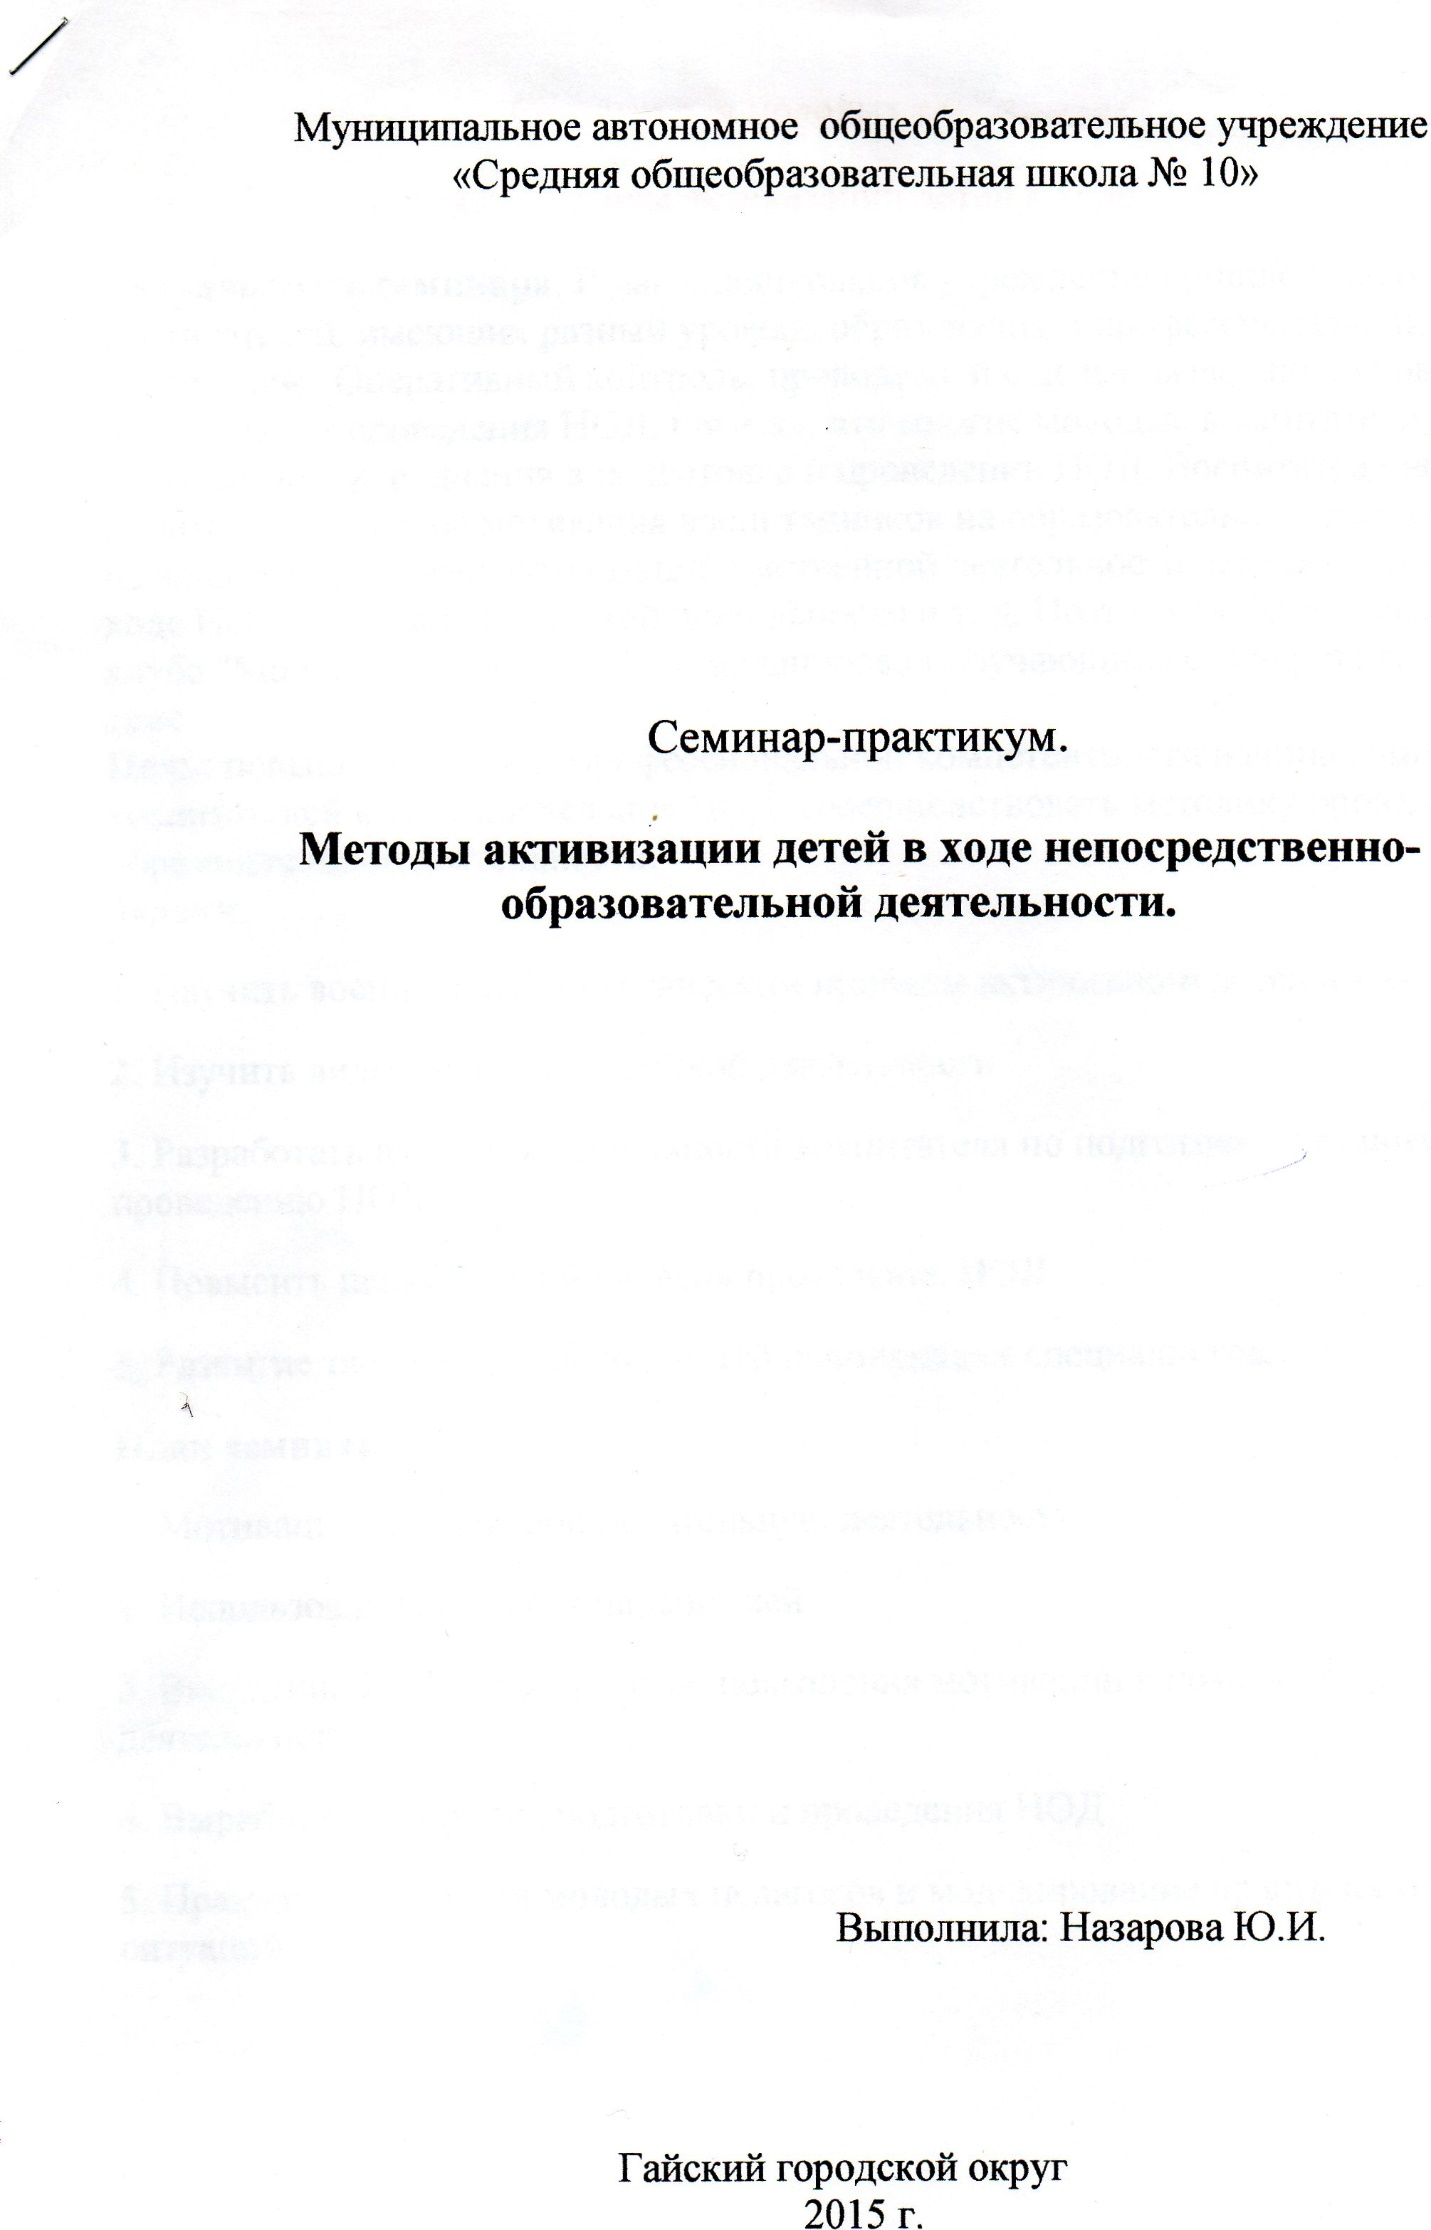 C:\Users\Василий\Pictures\img026.jpg